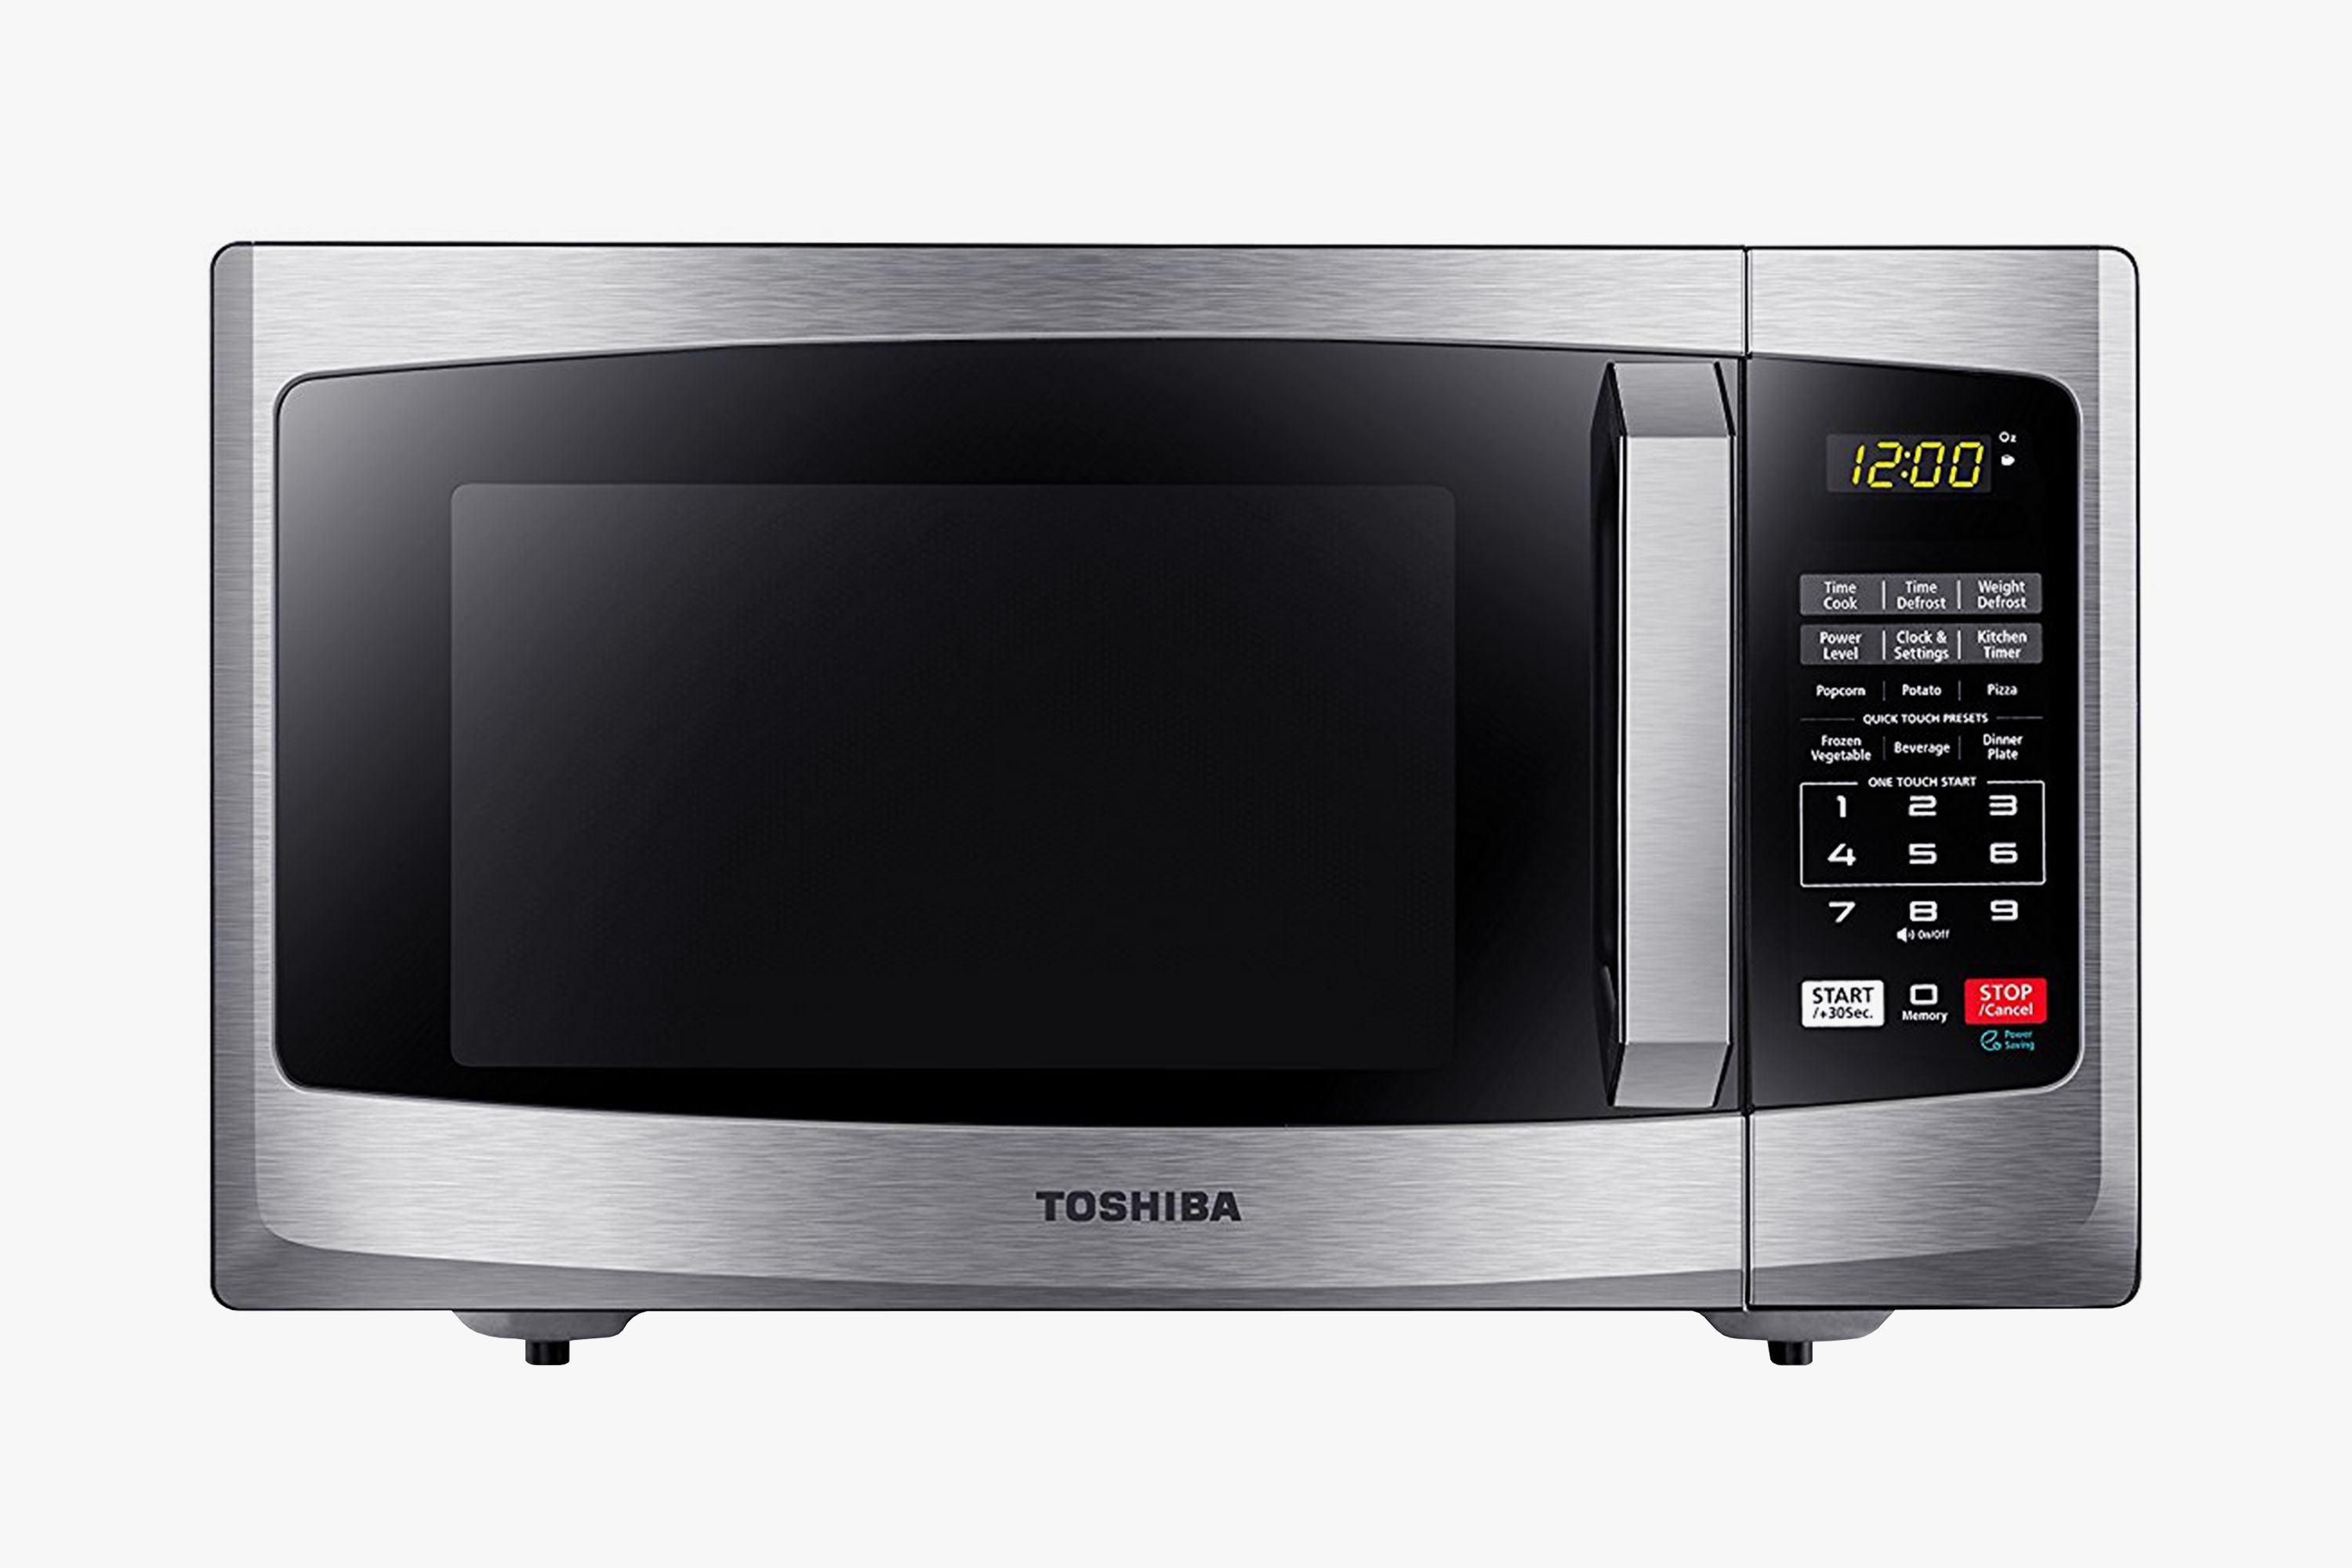 Best For Small Size Toshiba Em925a5a Countertop Microwave